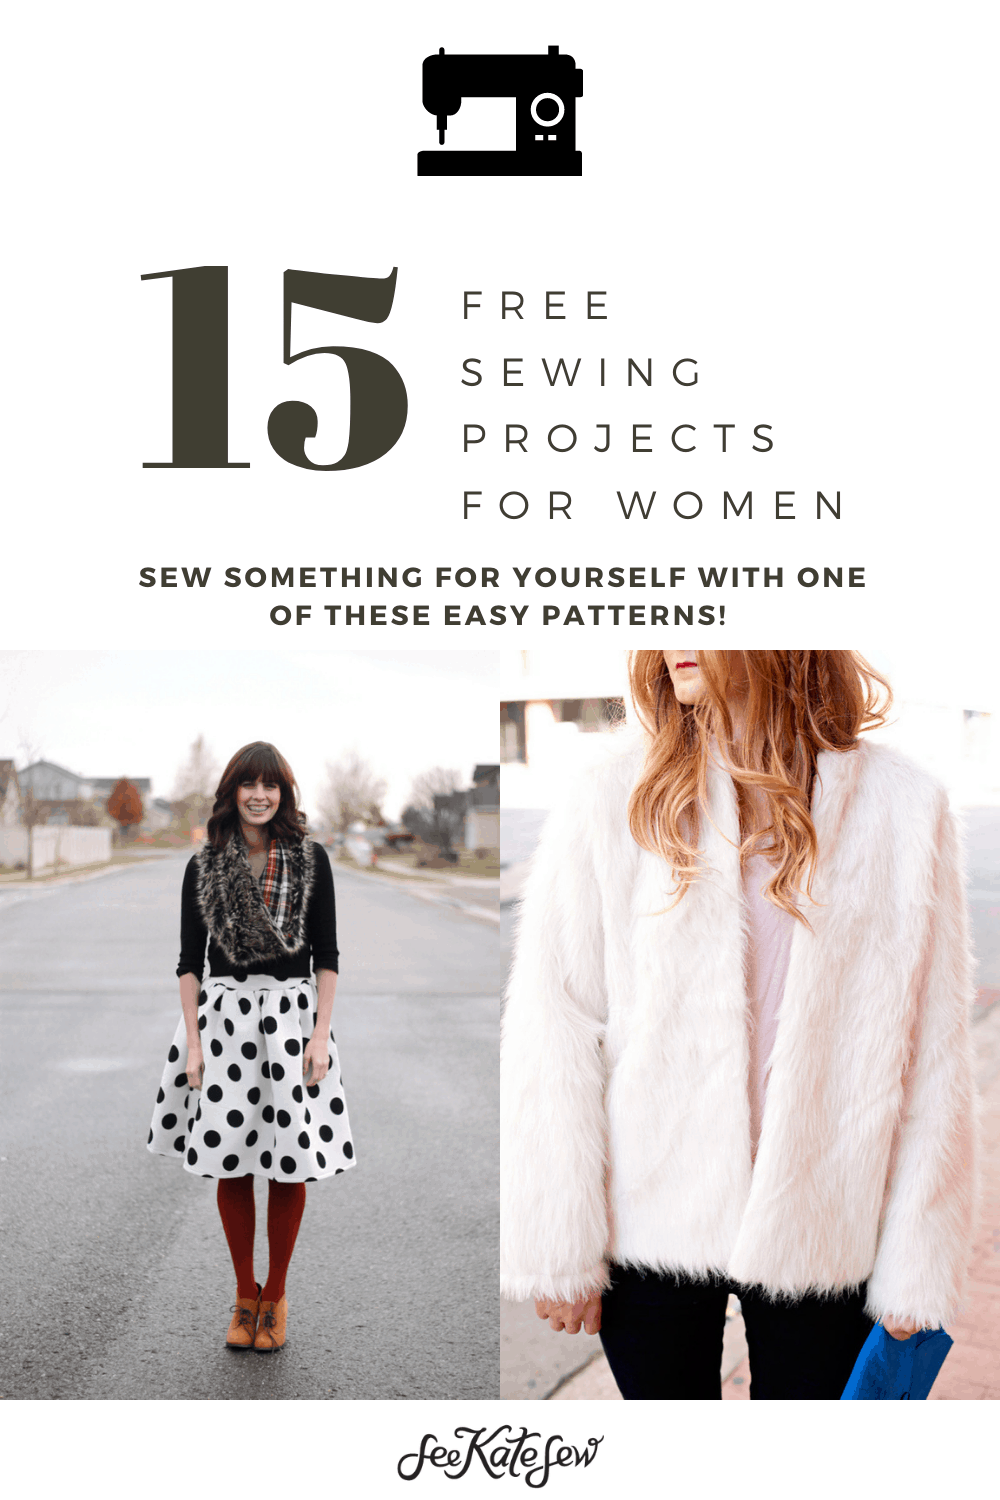 Free Sewing Projects for Women